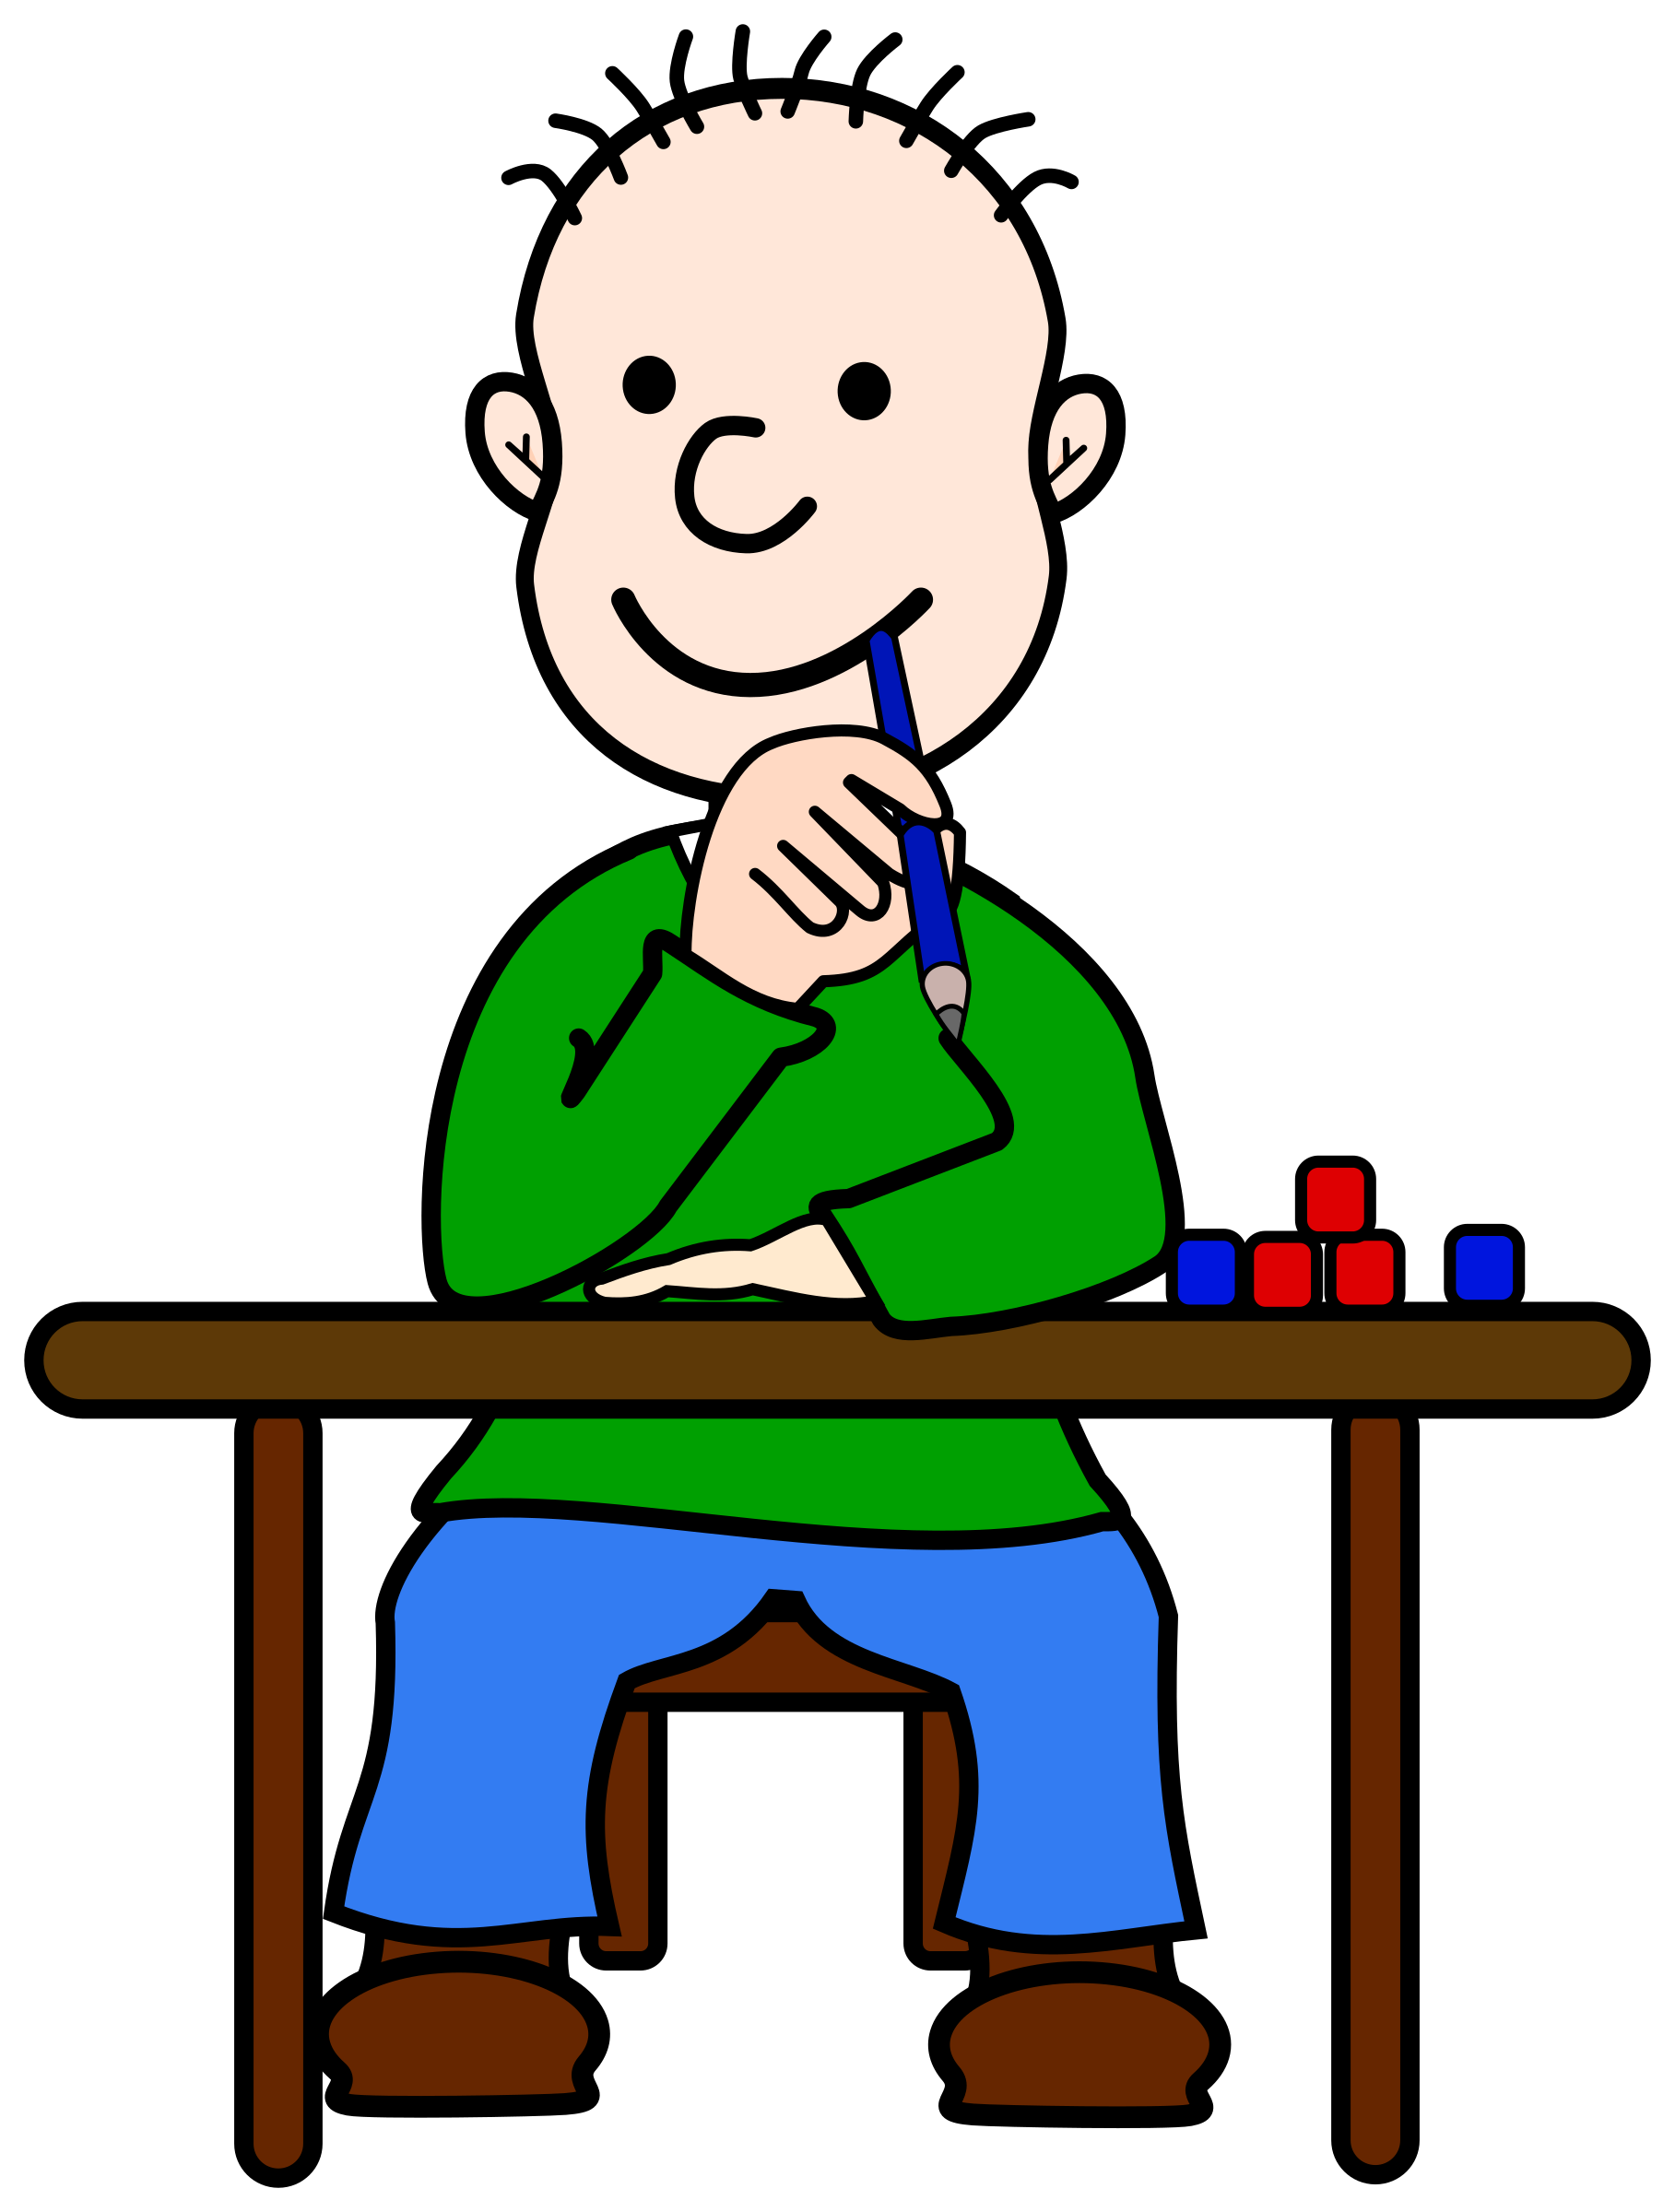 clipart download Think at getdrawings com. Kid thinking clipart.